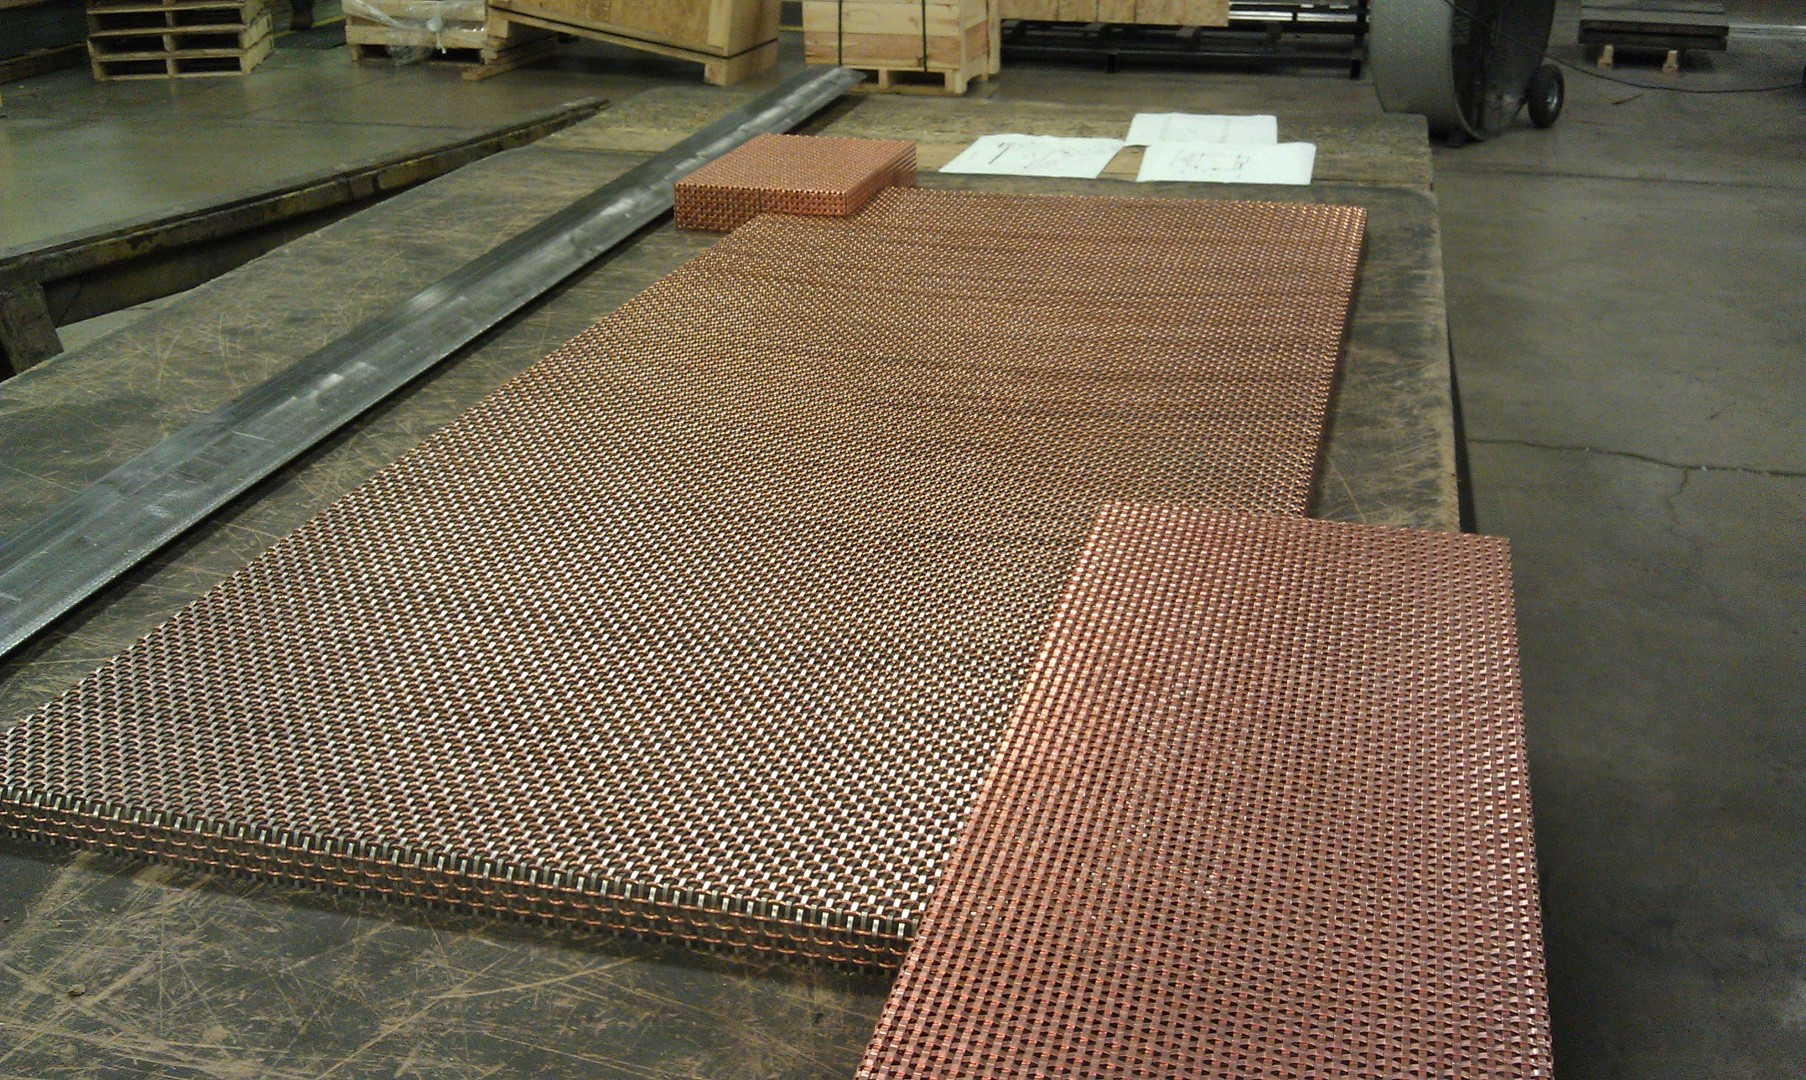 Each wire mesh panel was cut and formed to create a seamless fit.